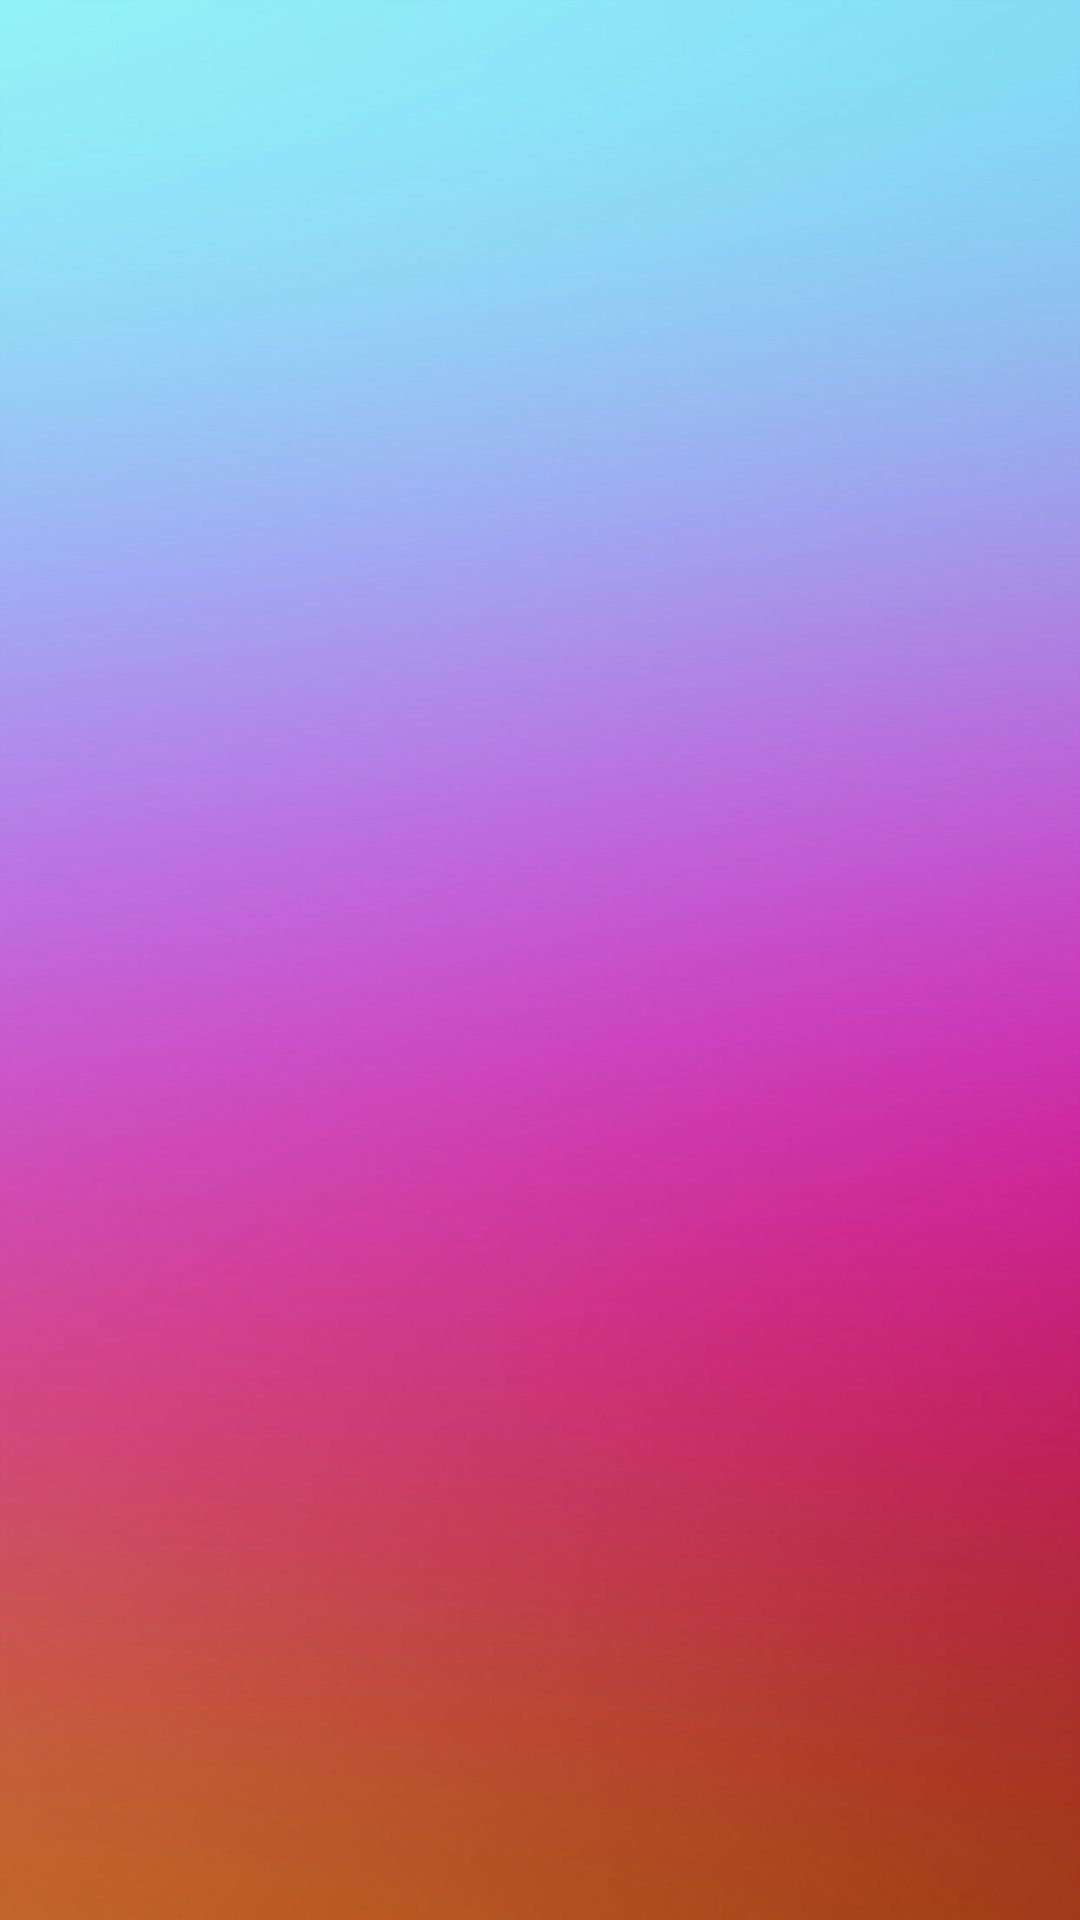 Wallpaper iphone color - Blue And Red Color Gradation Blur Iphone 6 Wallpaper